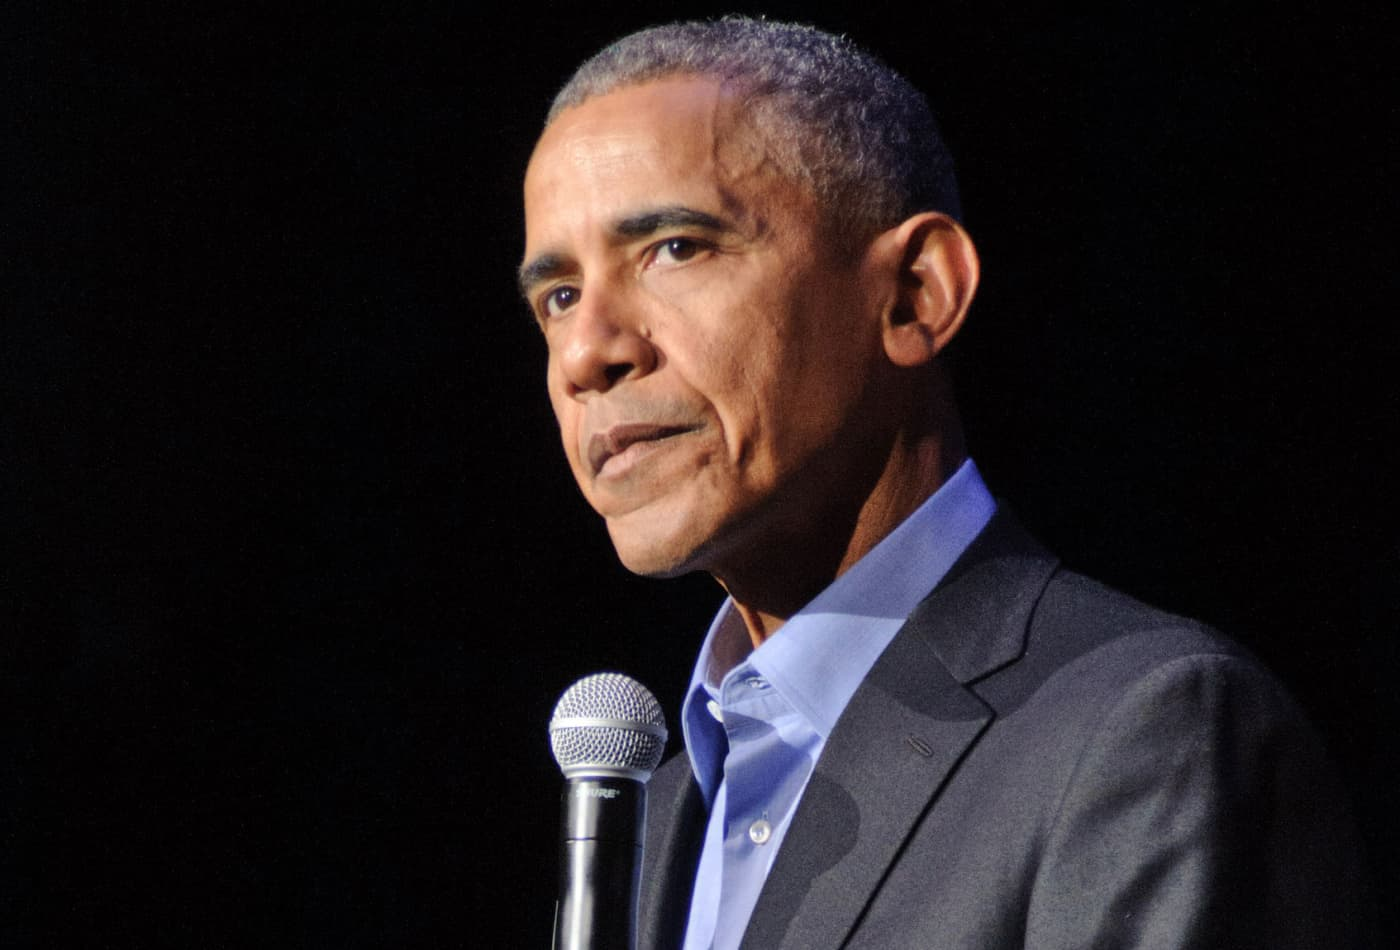 Barack Obama on wealth inequality: 'There's only so much you